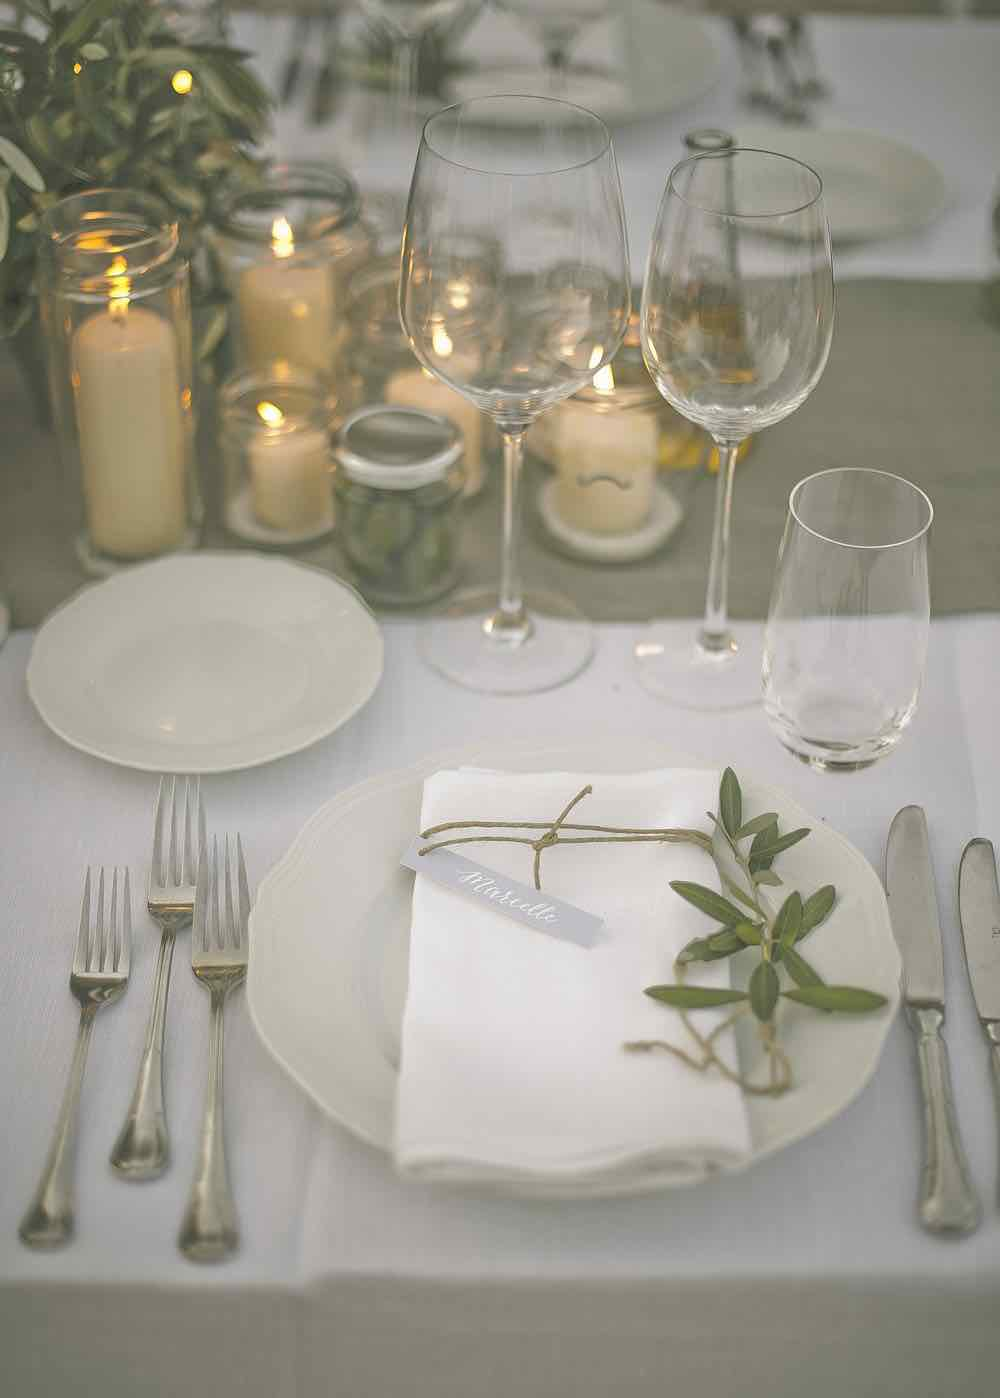 Candelight Table Setting